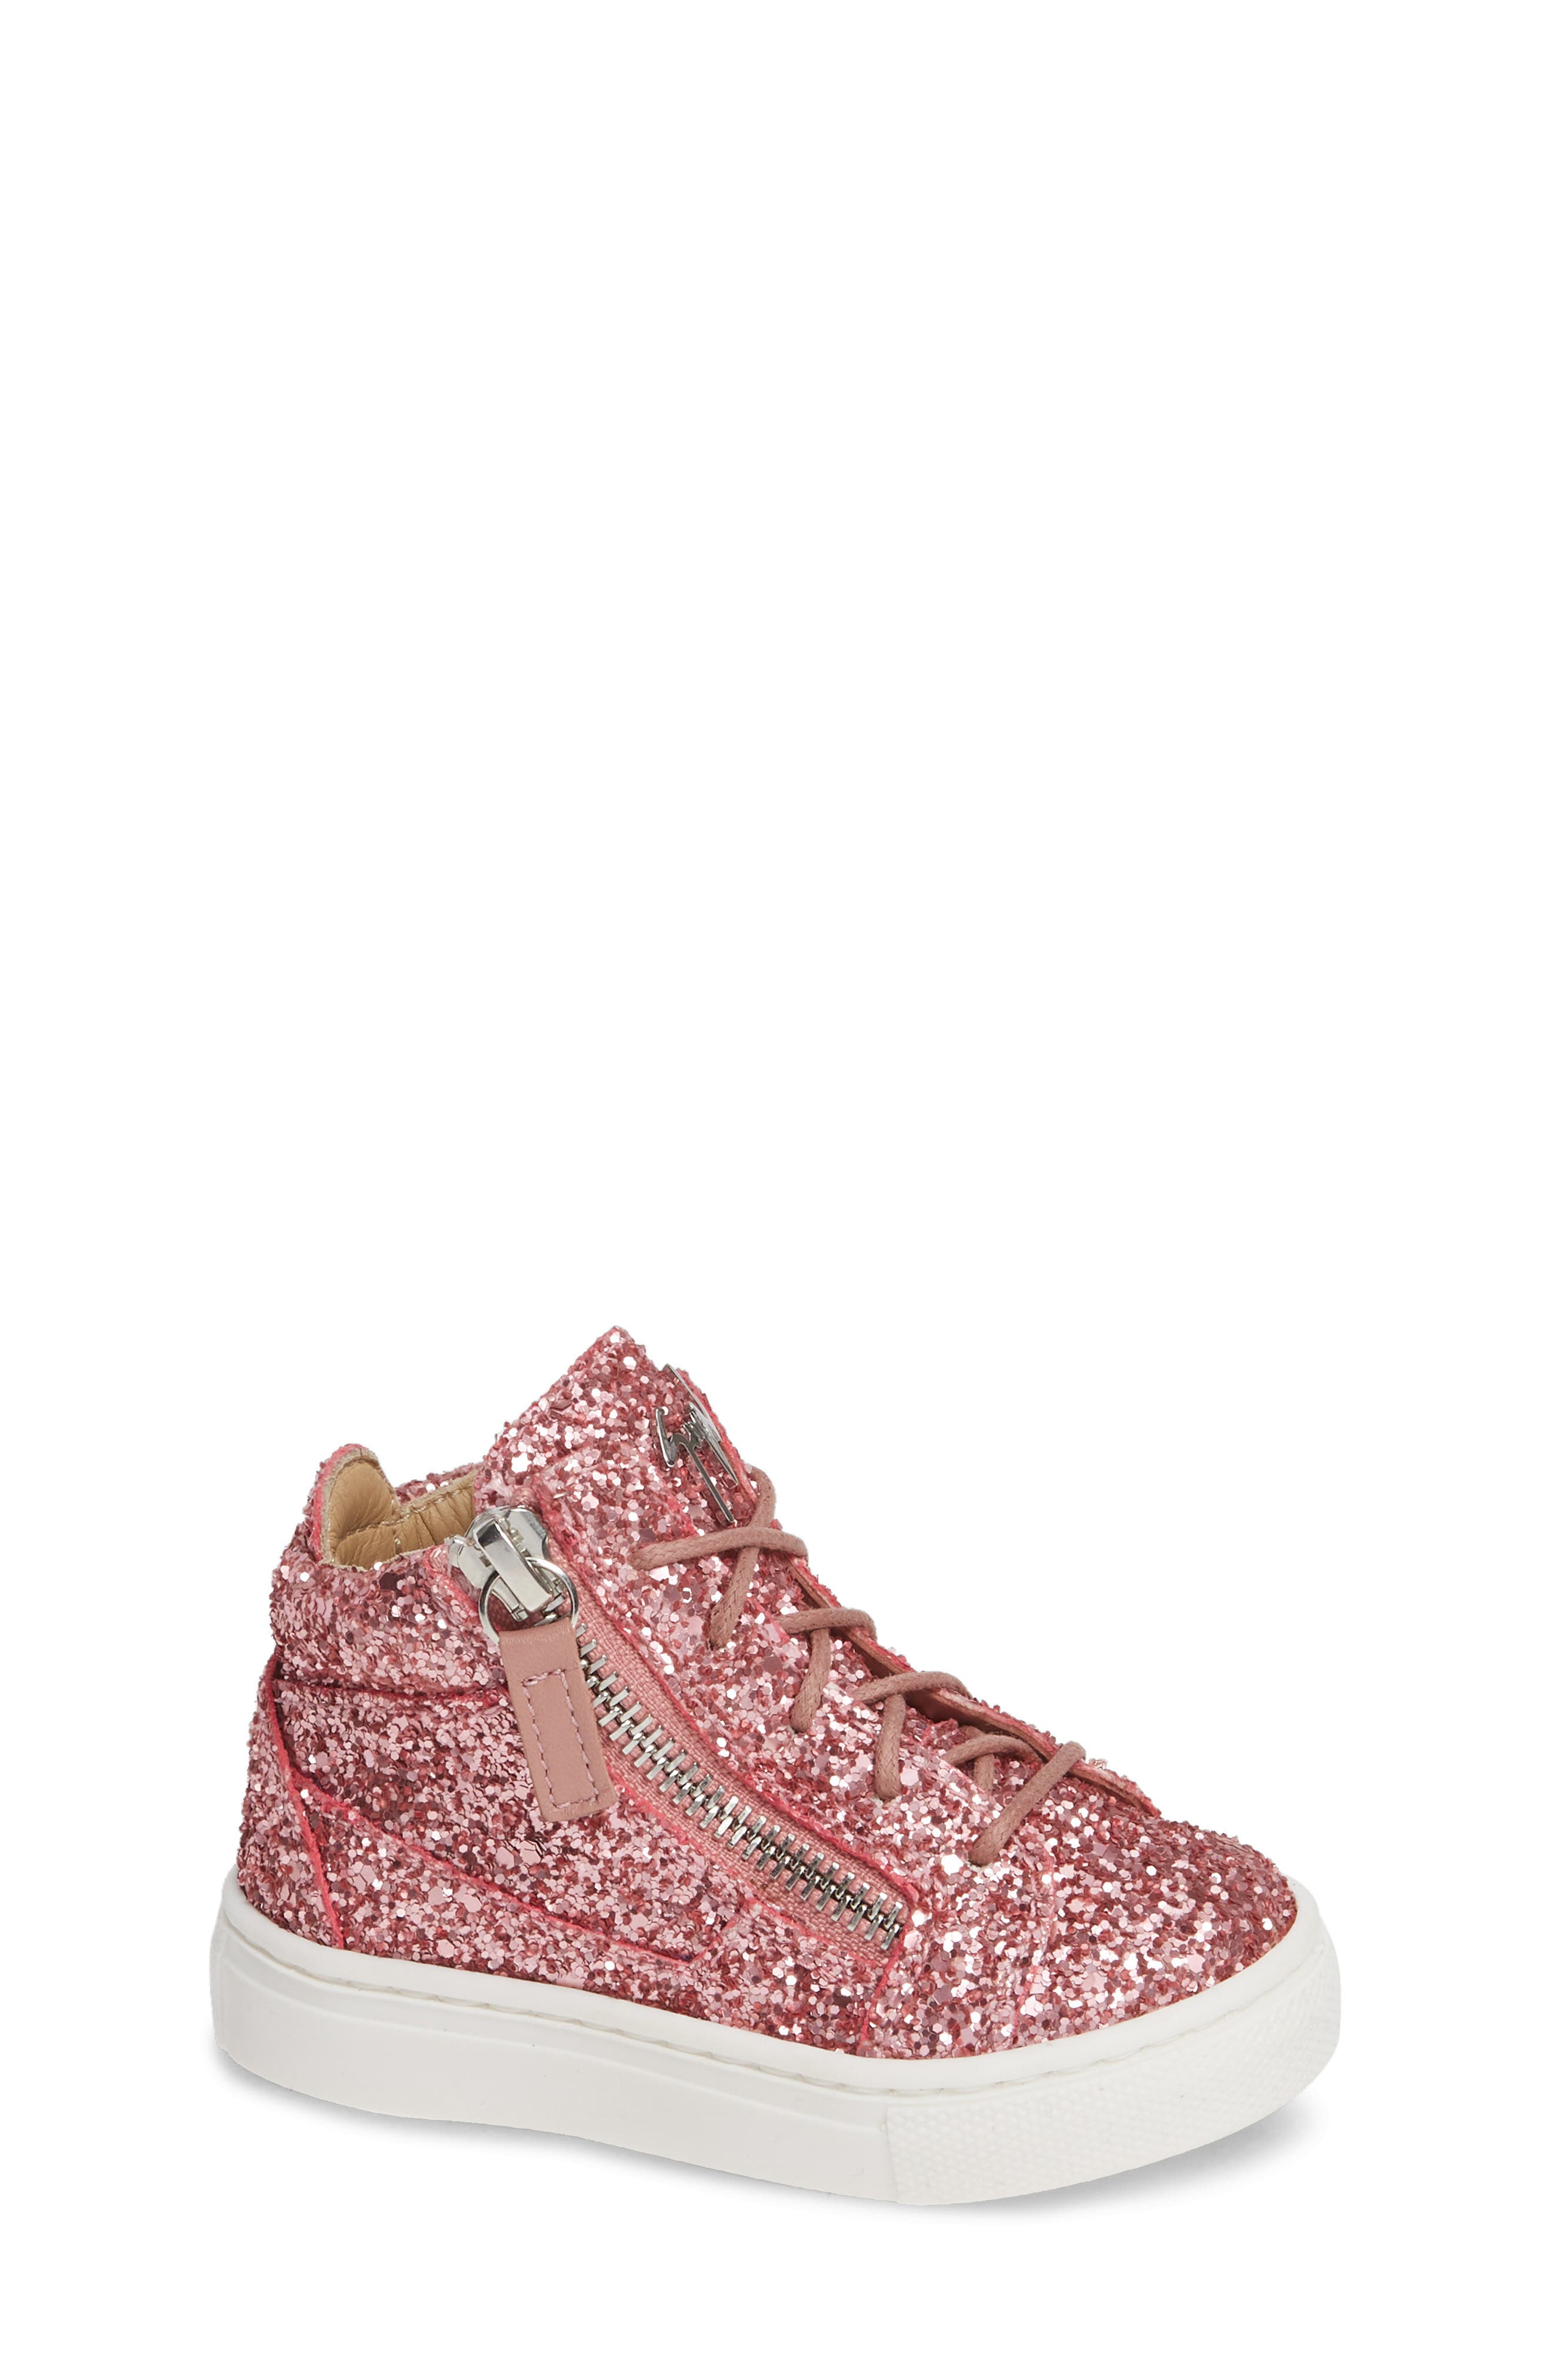 GIUSEPPE ZANOTTI, Natalie High Top Sneaker, Main thumbnail 1, color, LIPGLOSS